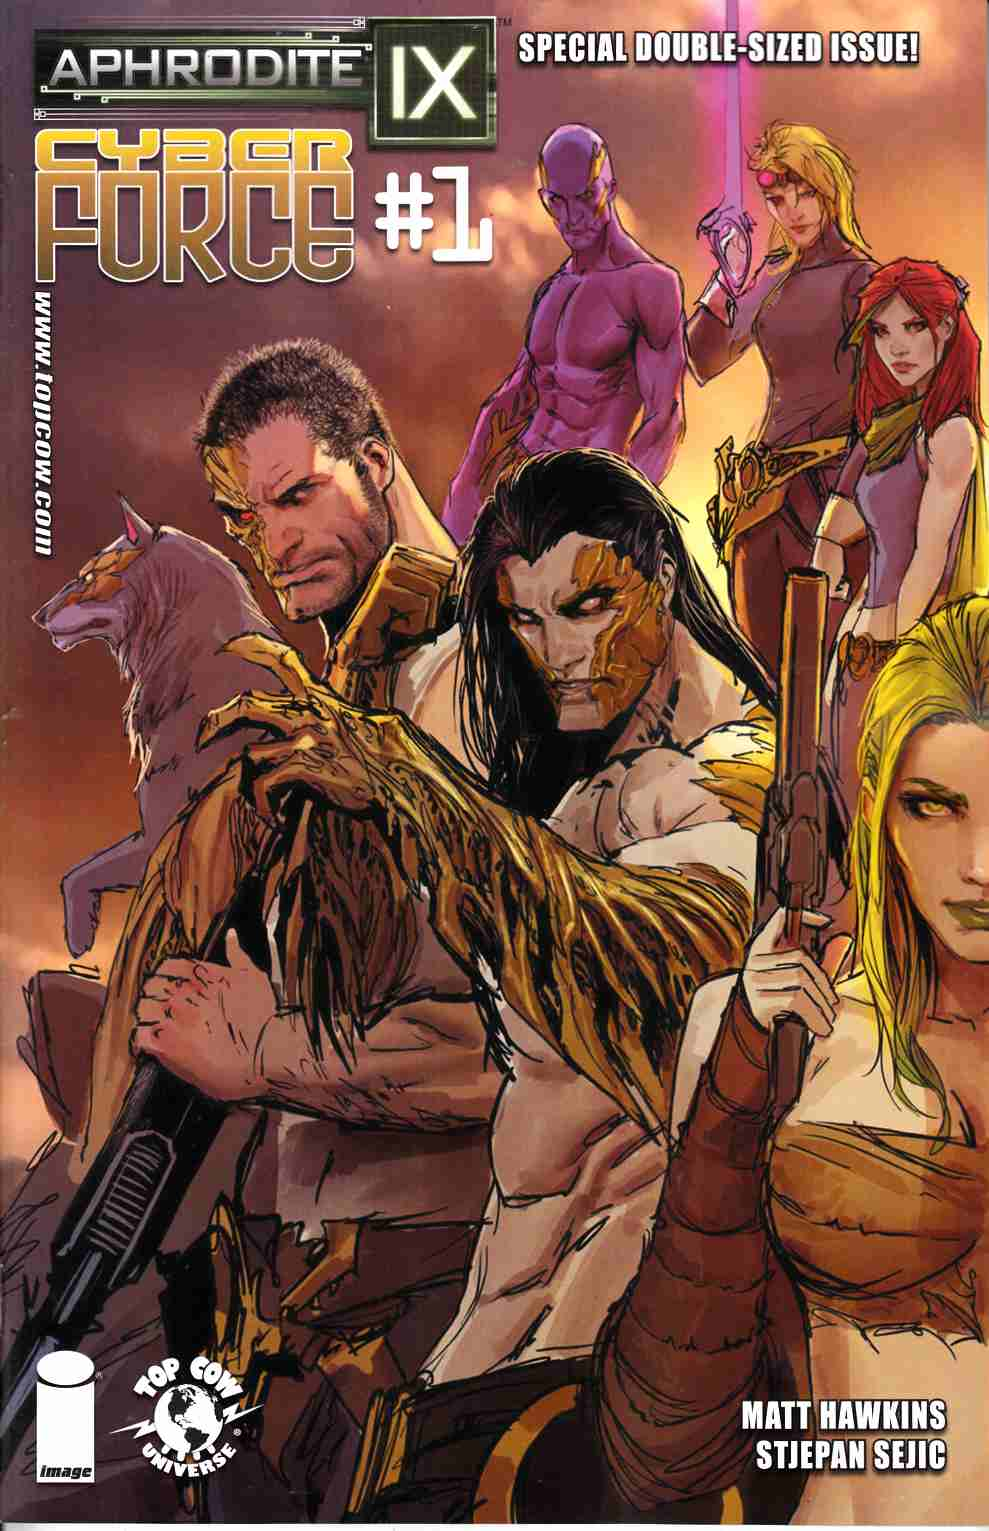 Aphrodite IX Cyber Force #1 Cover A- Sejic [Comic] THUMBNAIL